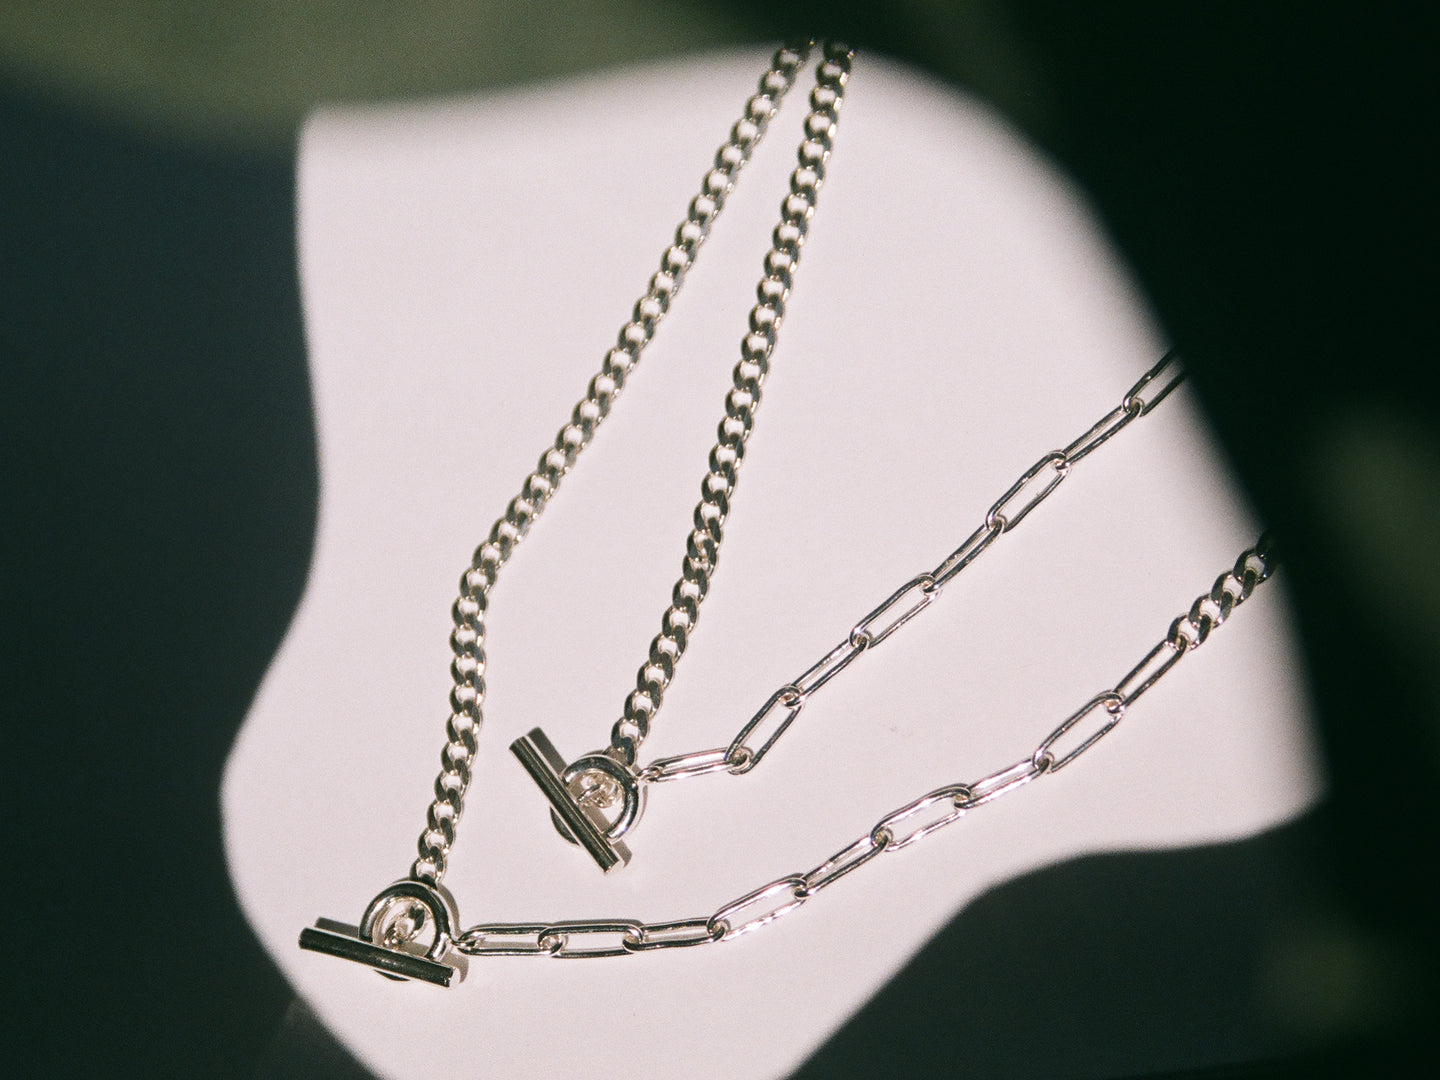 Enzo Necklace 2.0